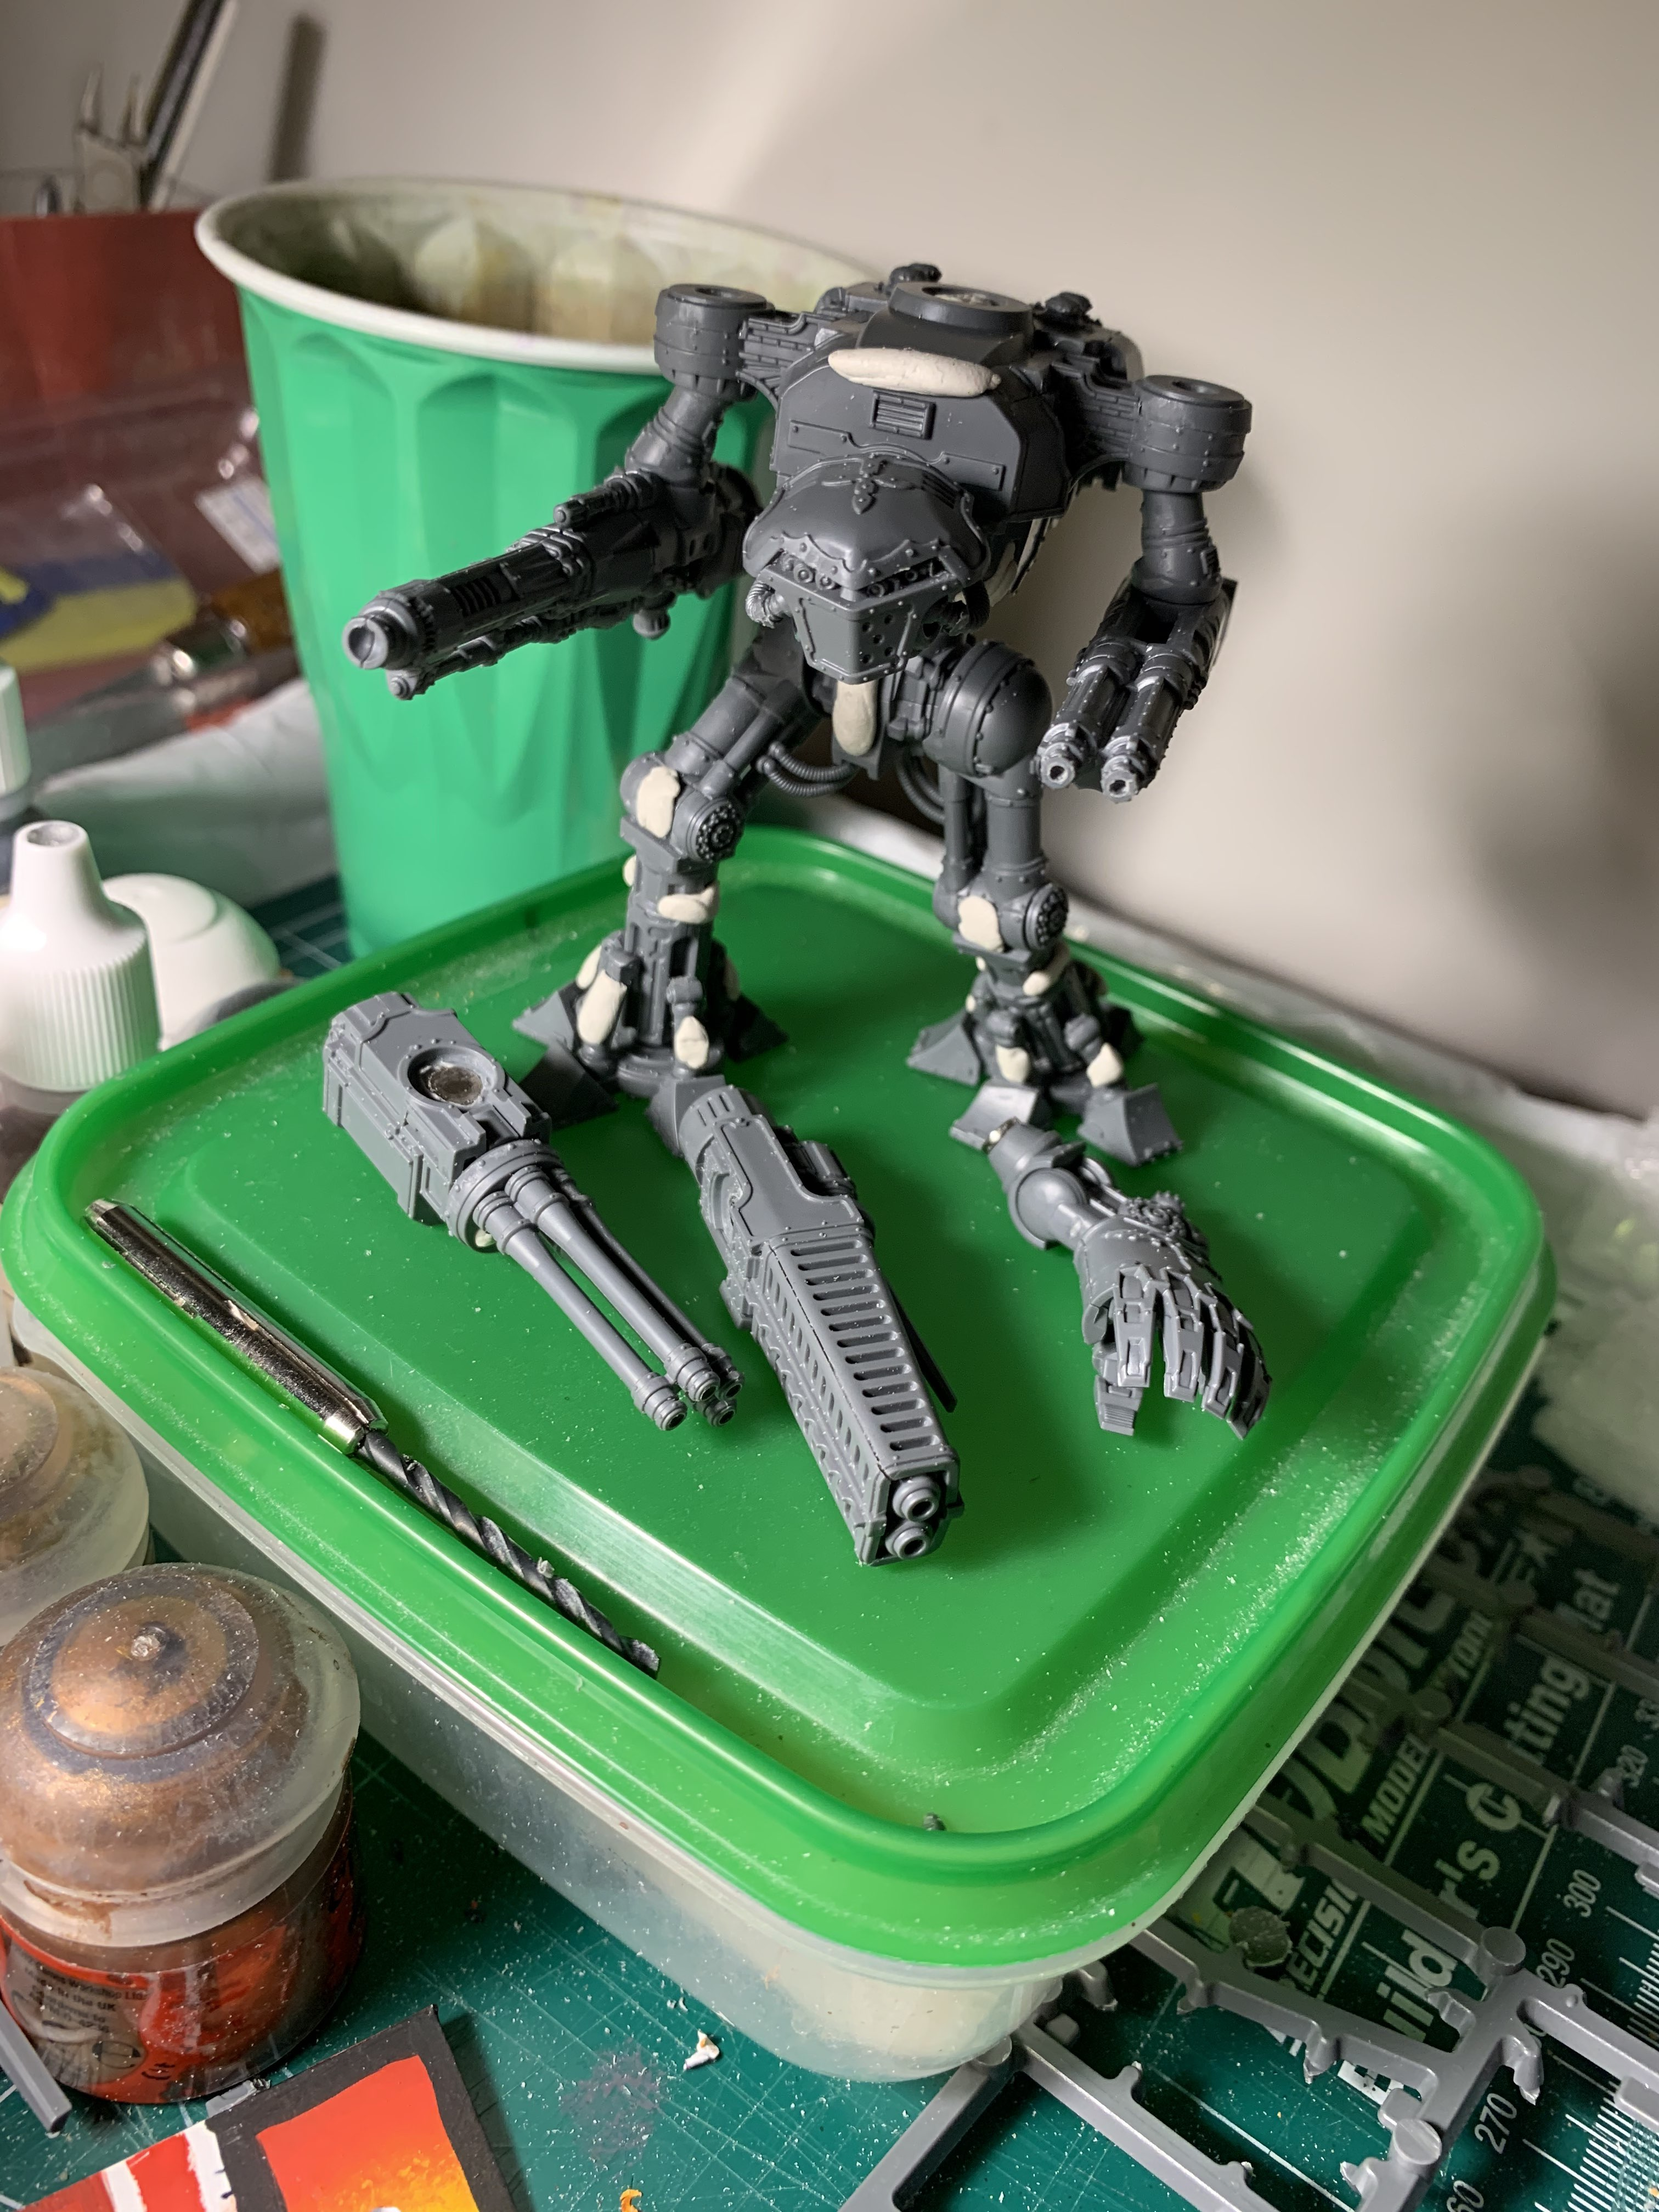 An unpainted model Reaver, a large bipedal walker, with a selection of weaponry at its feet.